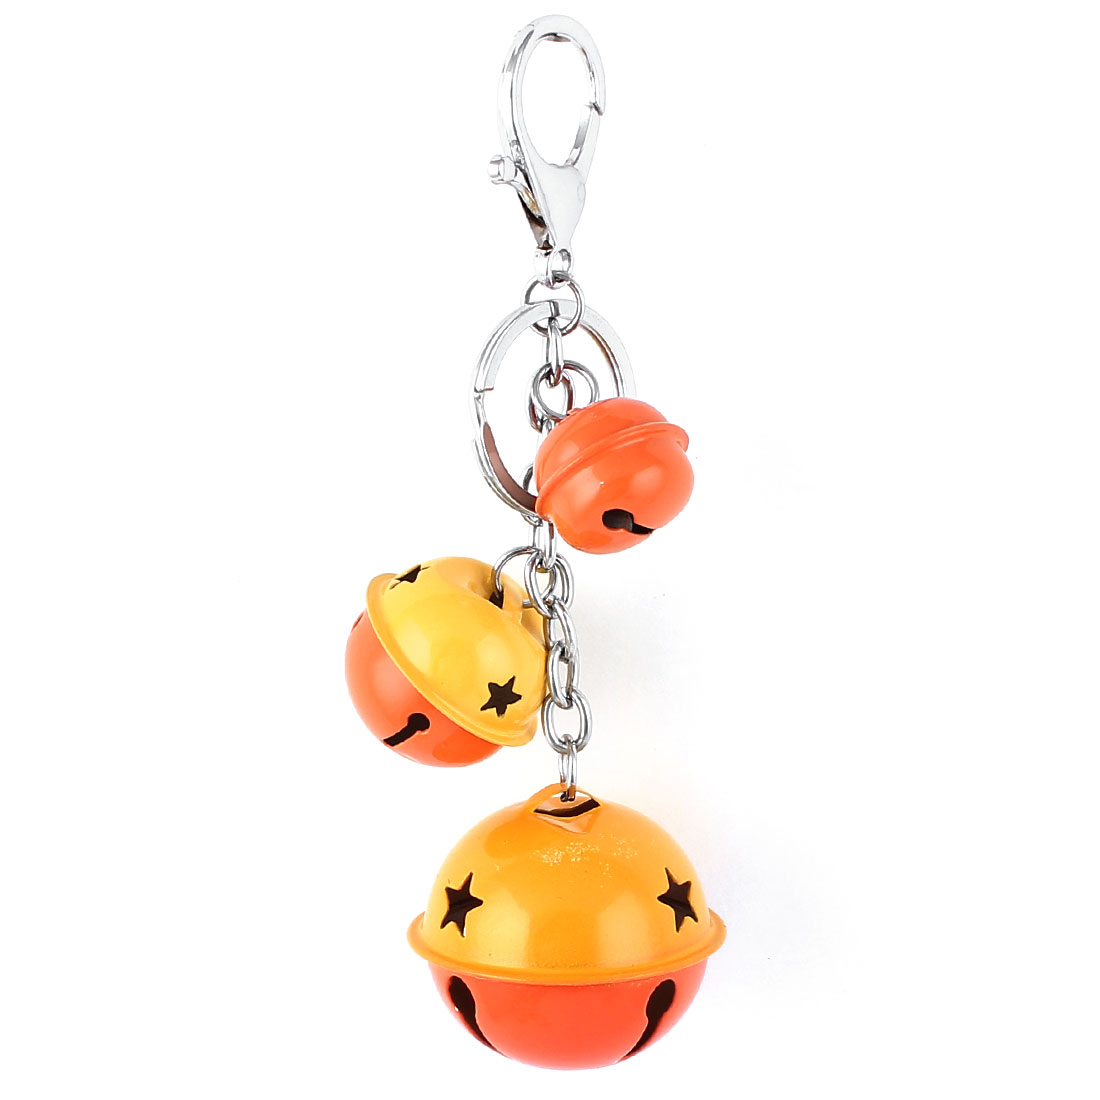 Bells Pendant Swivel Lobster Clasp Keyring Keychain Key Chain Ring Orange Yellow